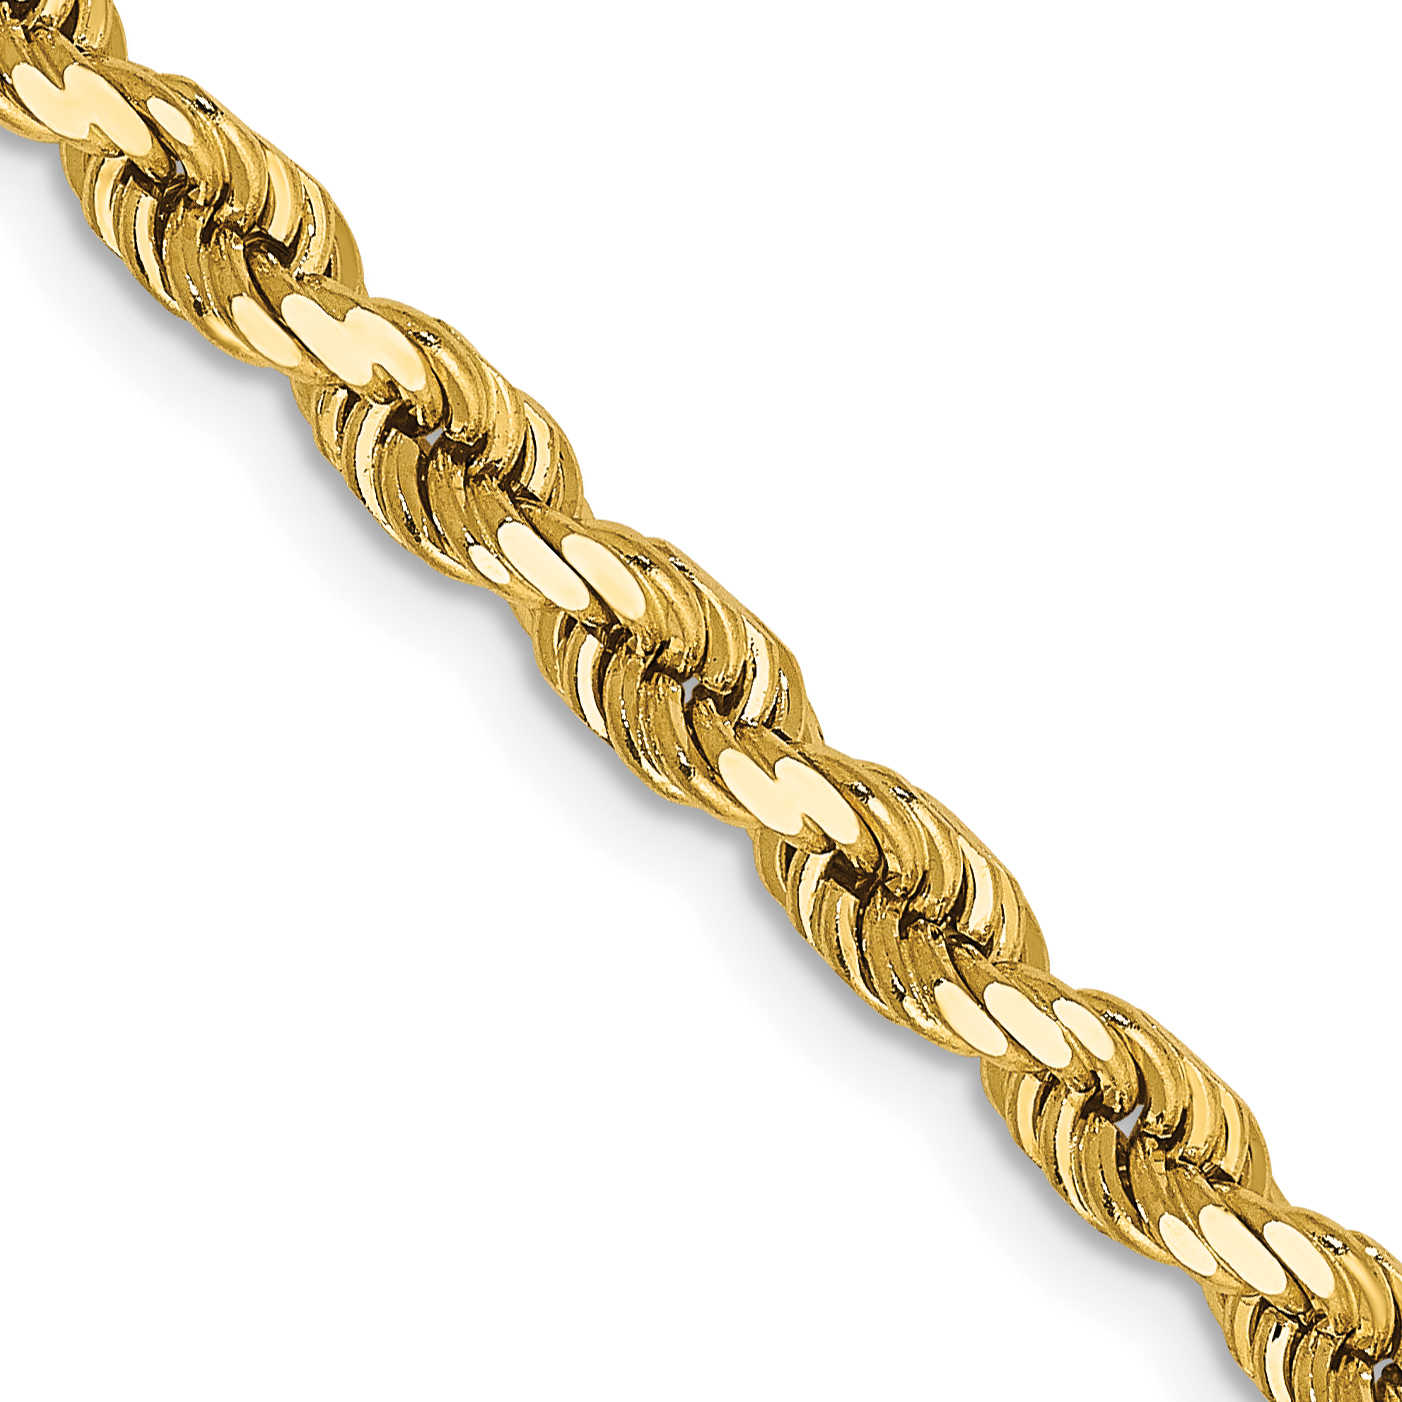 14k 4mm D/C Rope with Lobster Clasp Chain. Weight: 20.61,  Length: 16